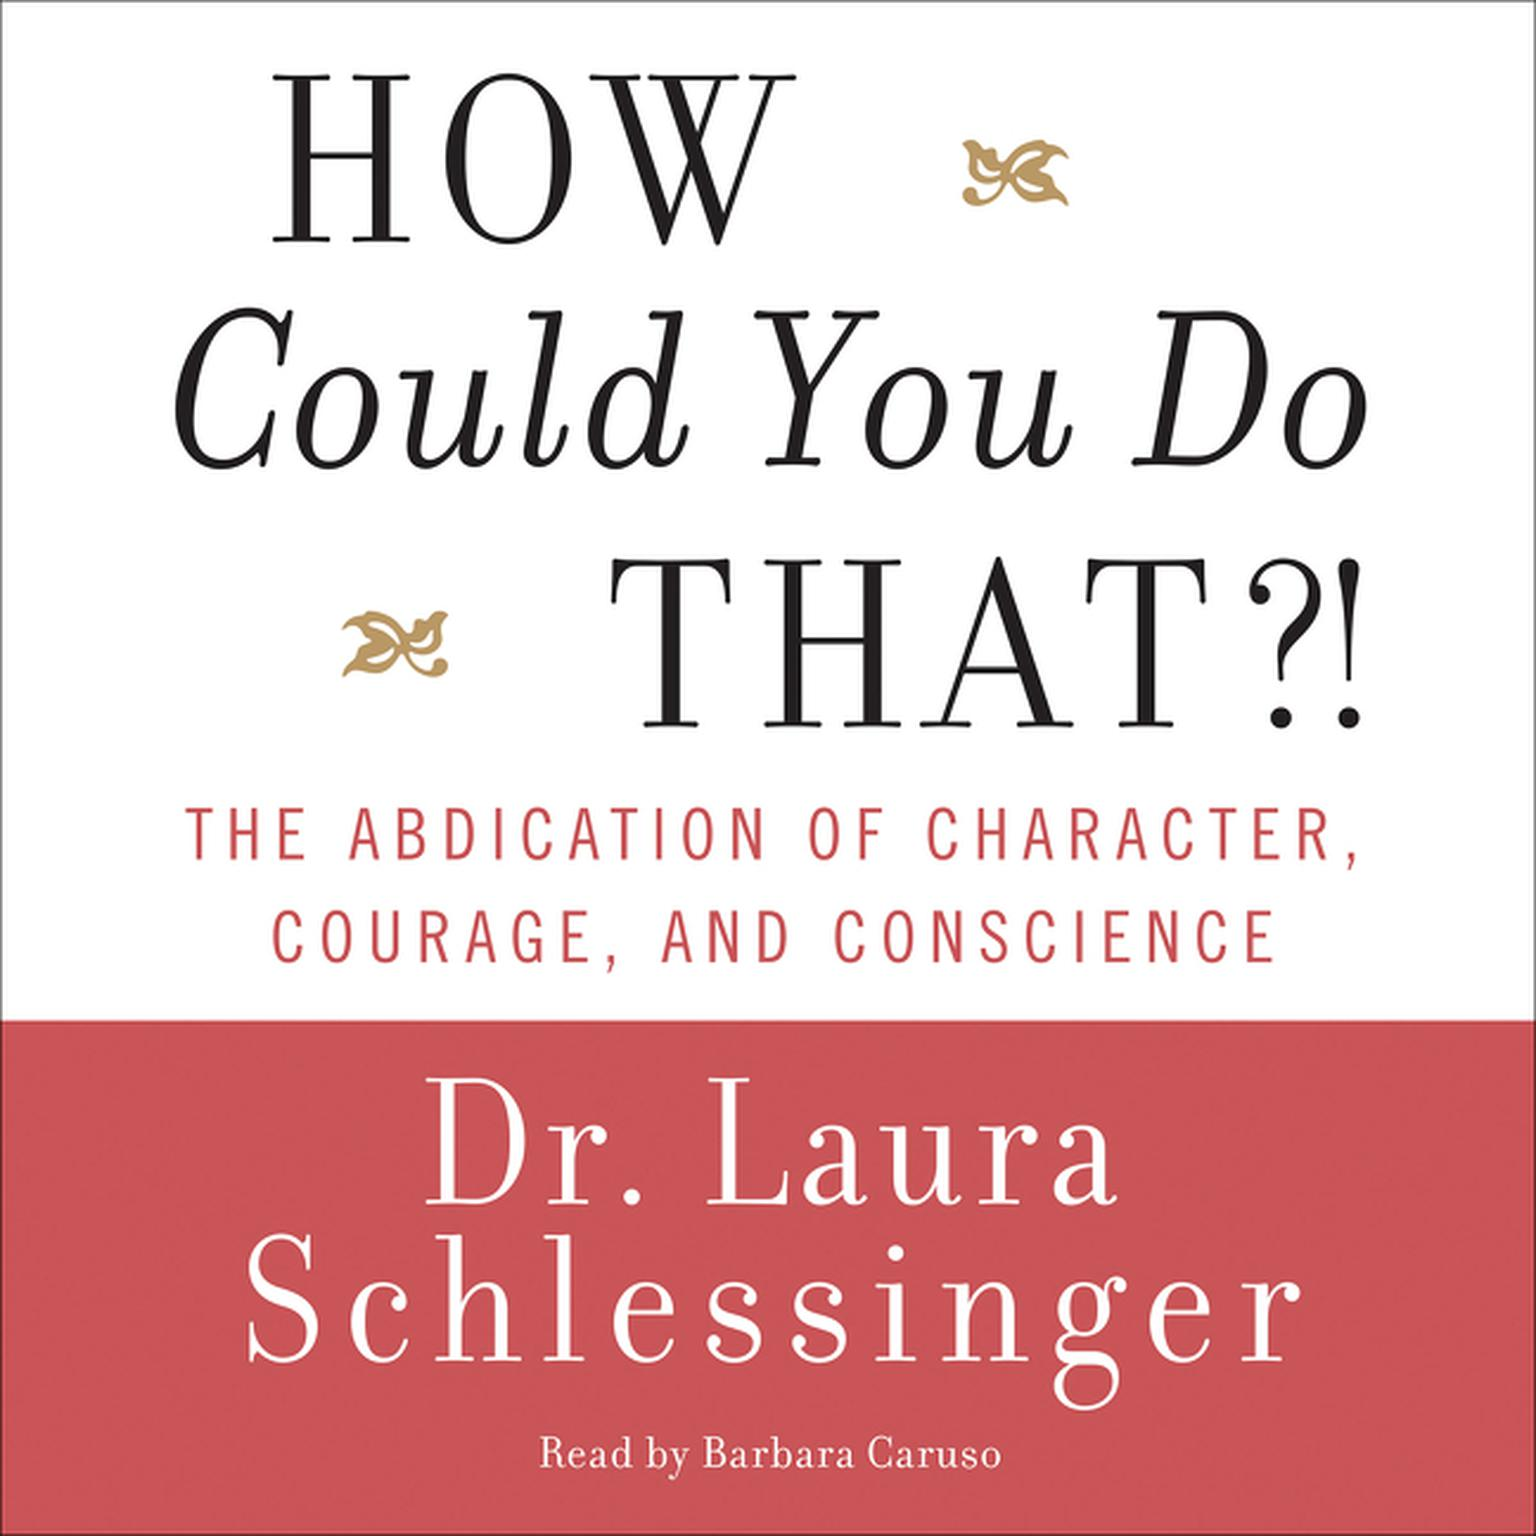 Printable How Could You Do That?!: Abdication of Character, Courage, and Conscience Audiobook Cover Art